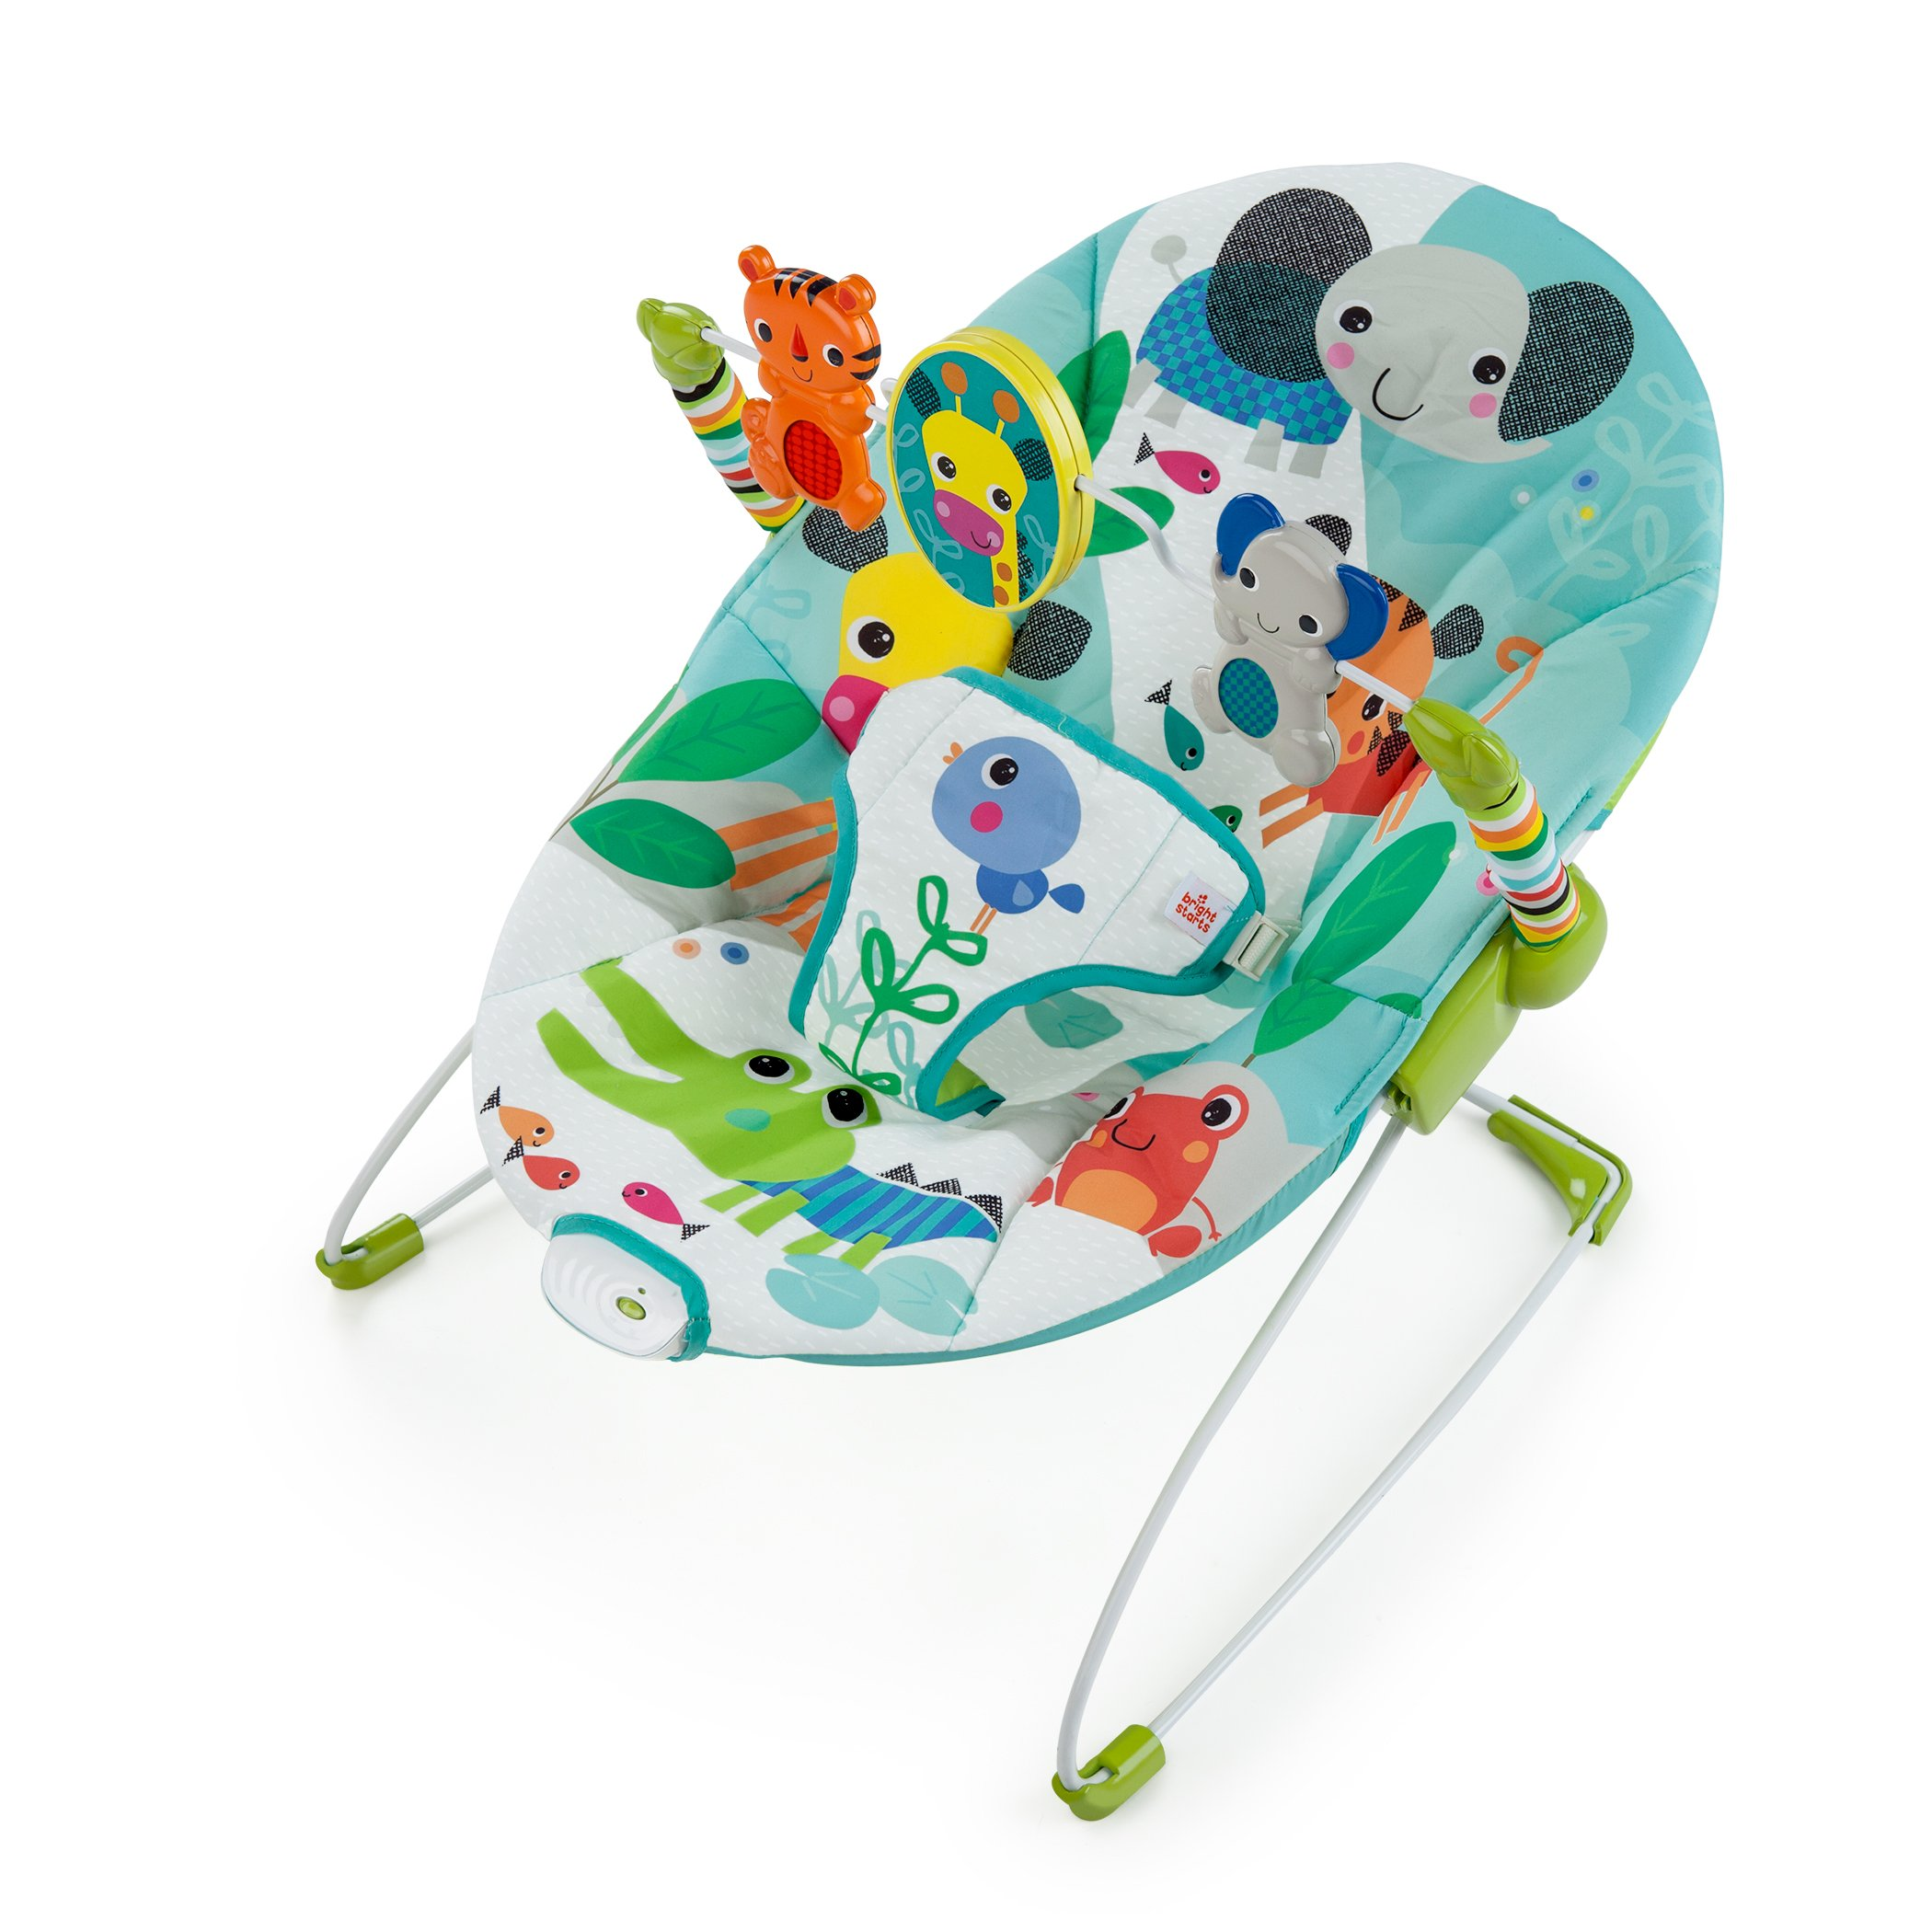 Bouncer Soothing Vibrating Chair Swing Calm Baby Bar Bright Starts